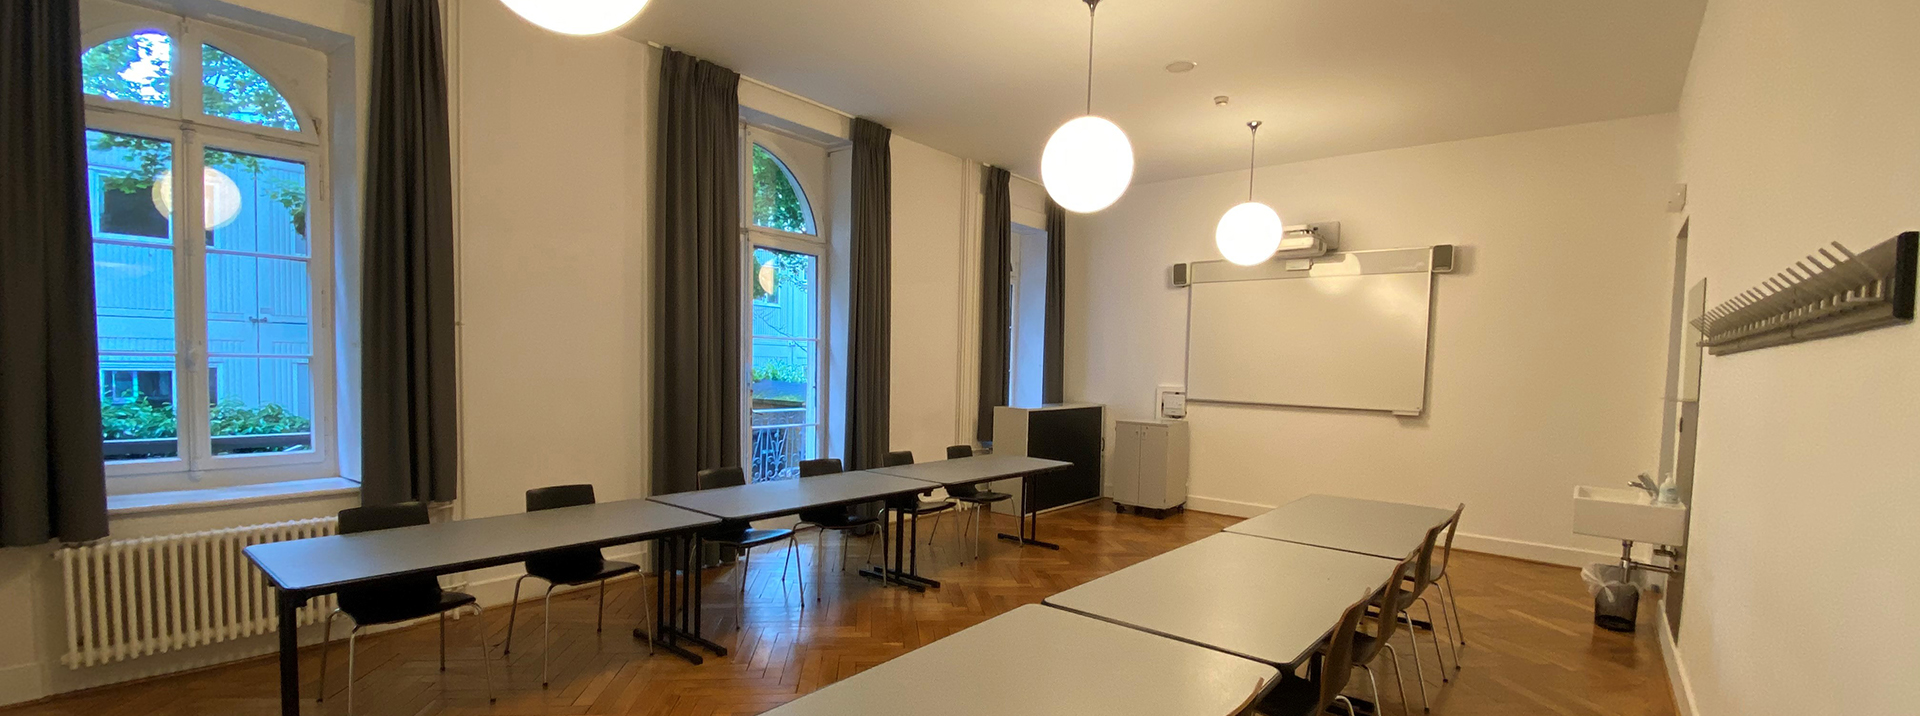 Conference rooms at Geneva Hostel